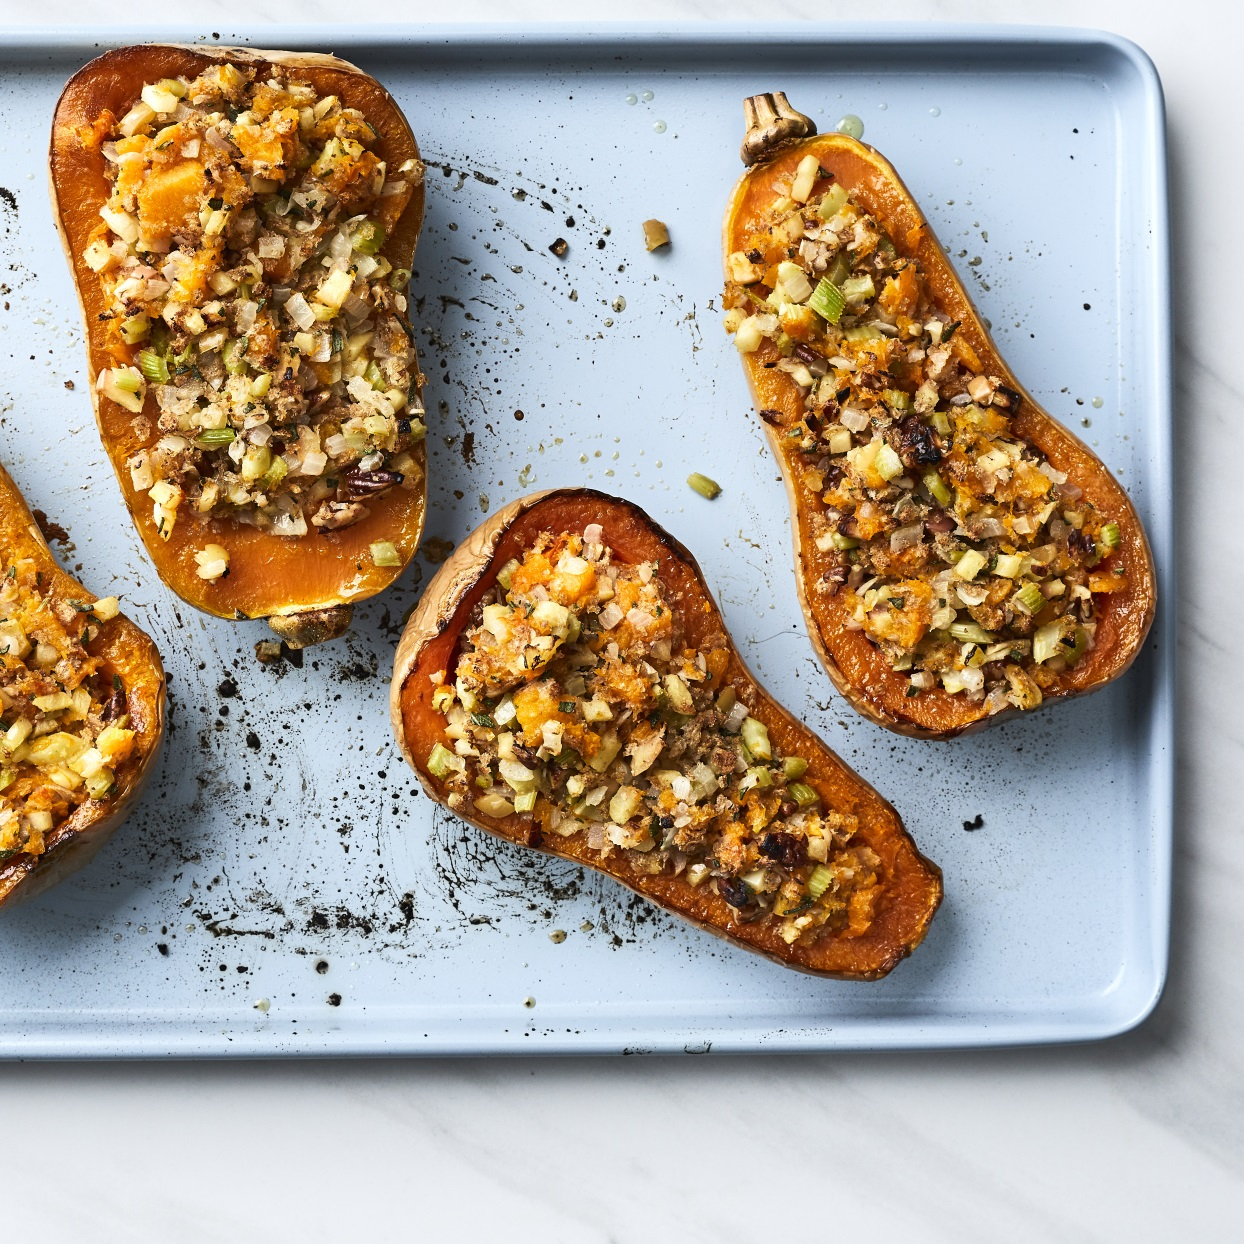 Apple & Pecan Stuffed Butternut Squash Allrecipes Trusted Brands